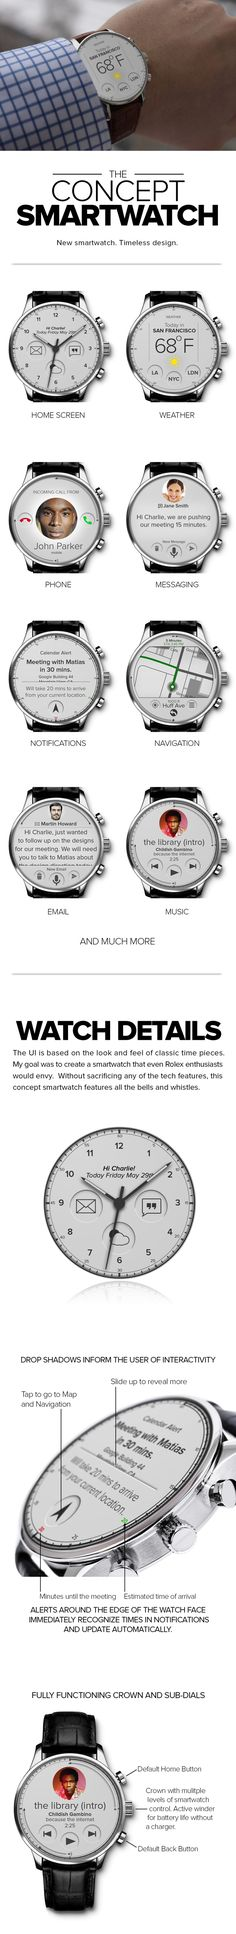 CONCEPT SMARTWATCH on Industrial Design Served